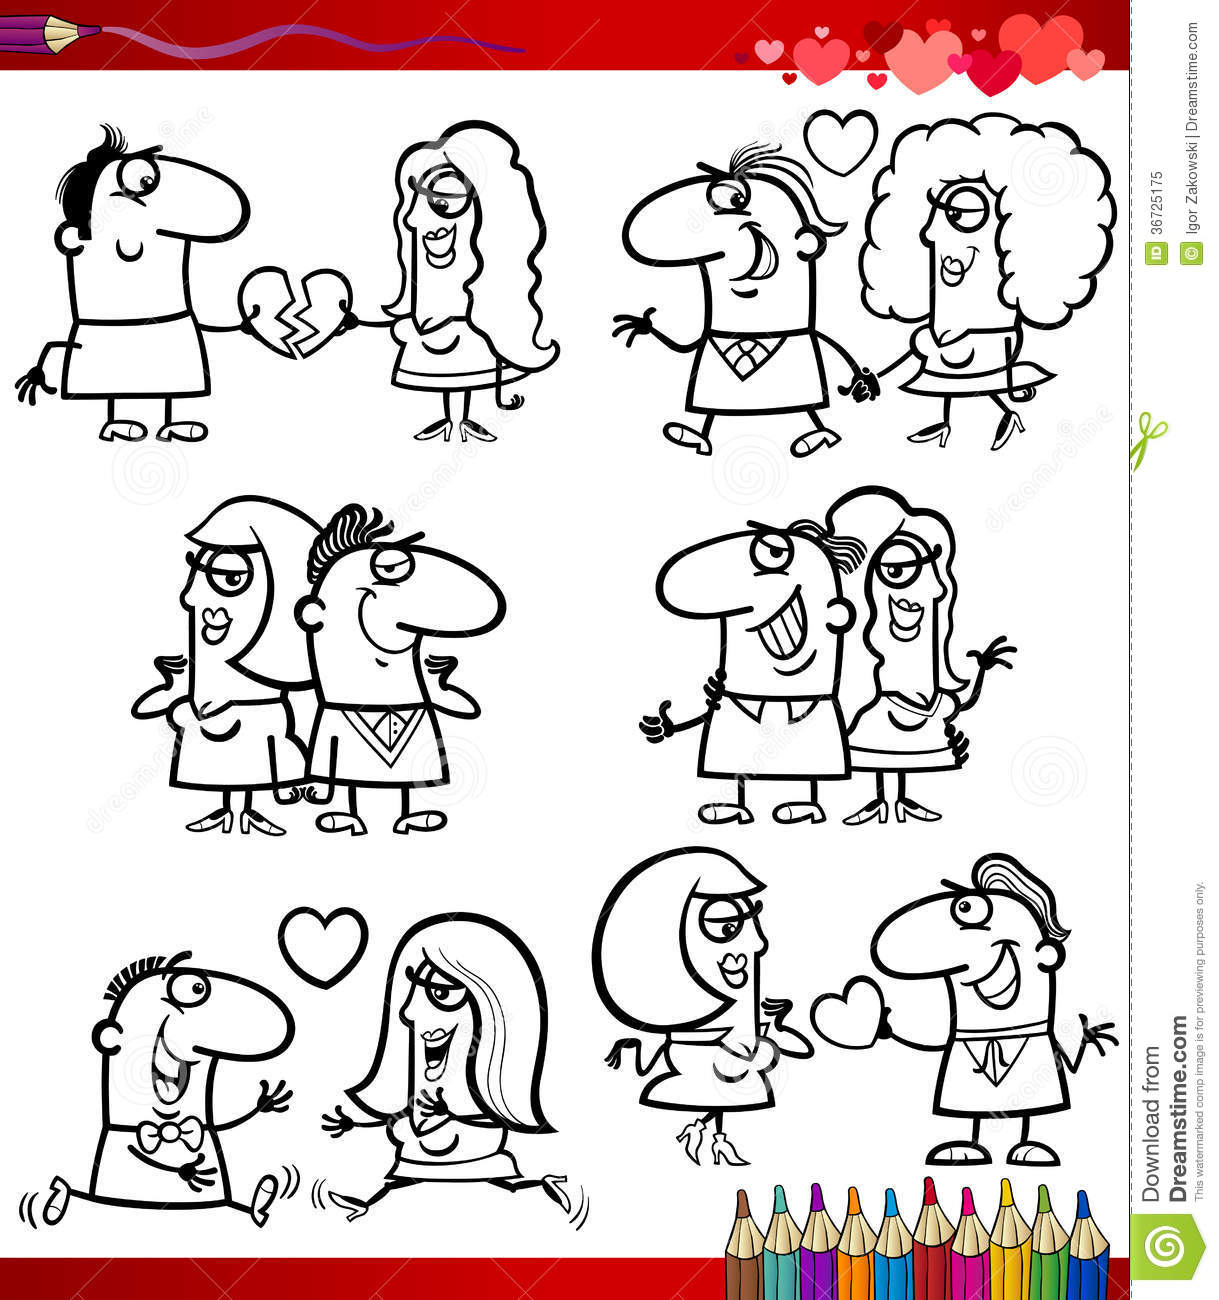 Couple In Love Cartoons Coloring Page Royalty Free Stock